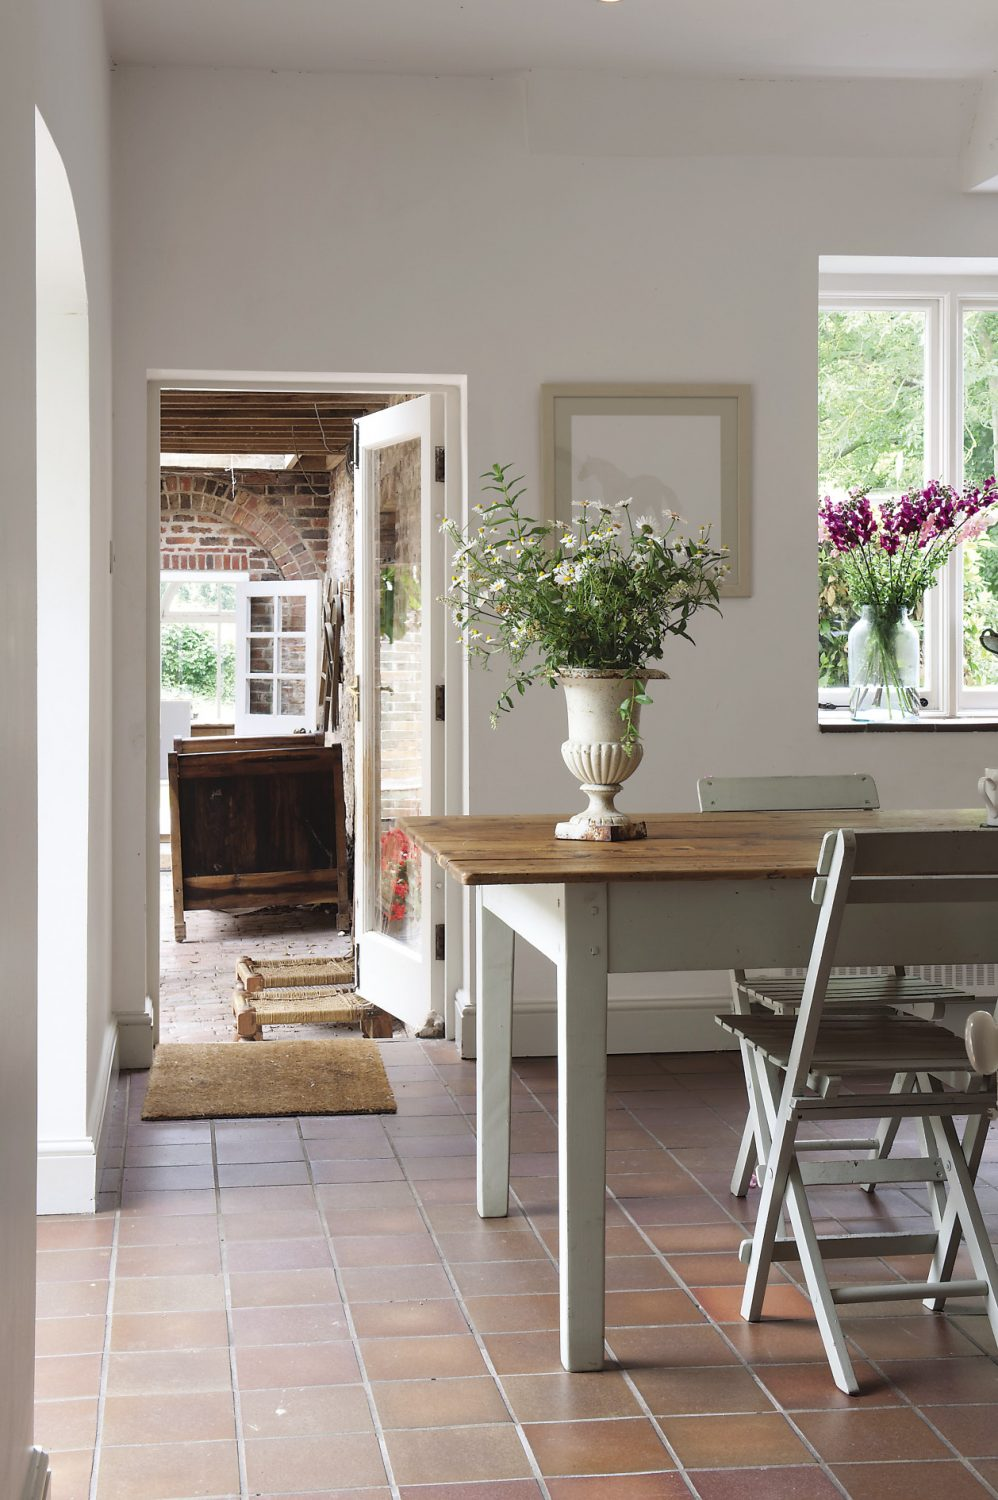 On the upper level of the kitchen there is a long wooden table, one of a pair made by a local carpenter in Polegate